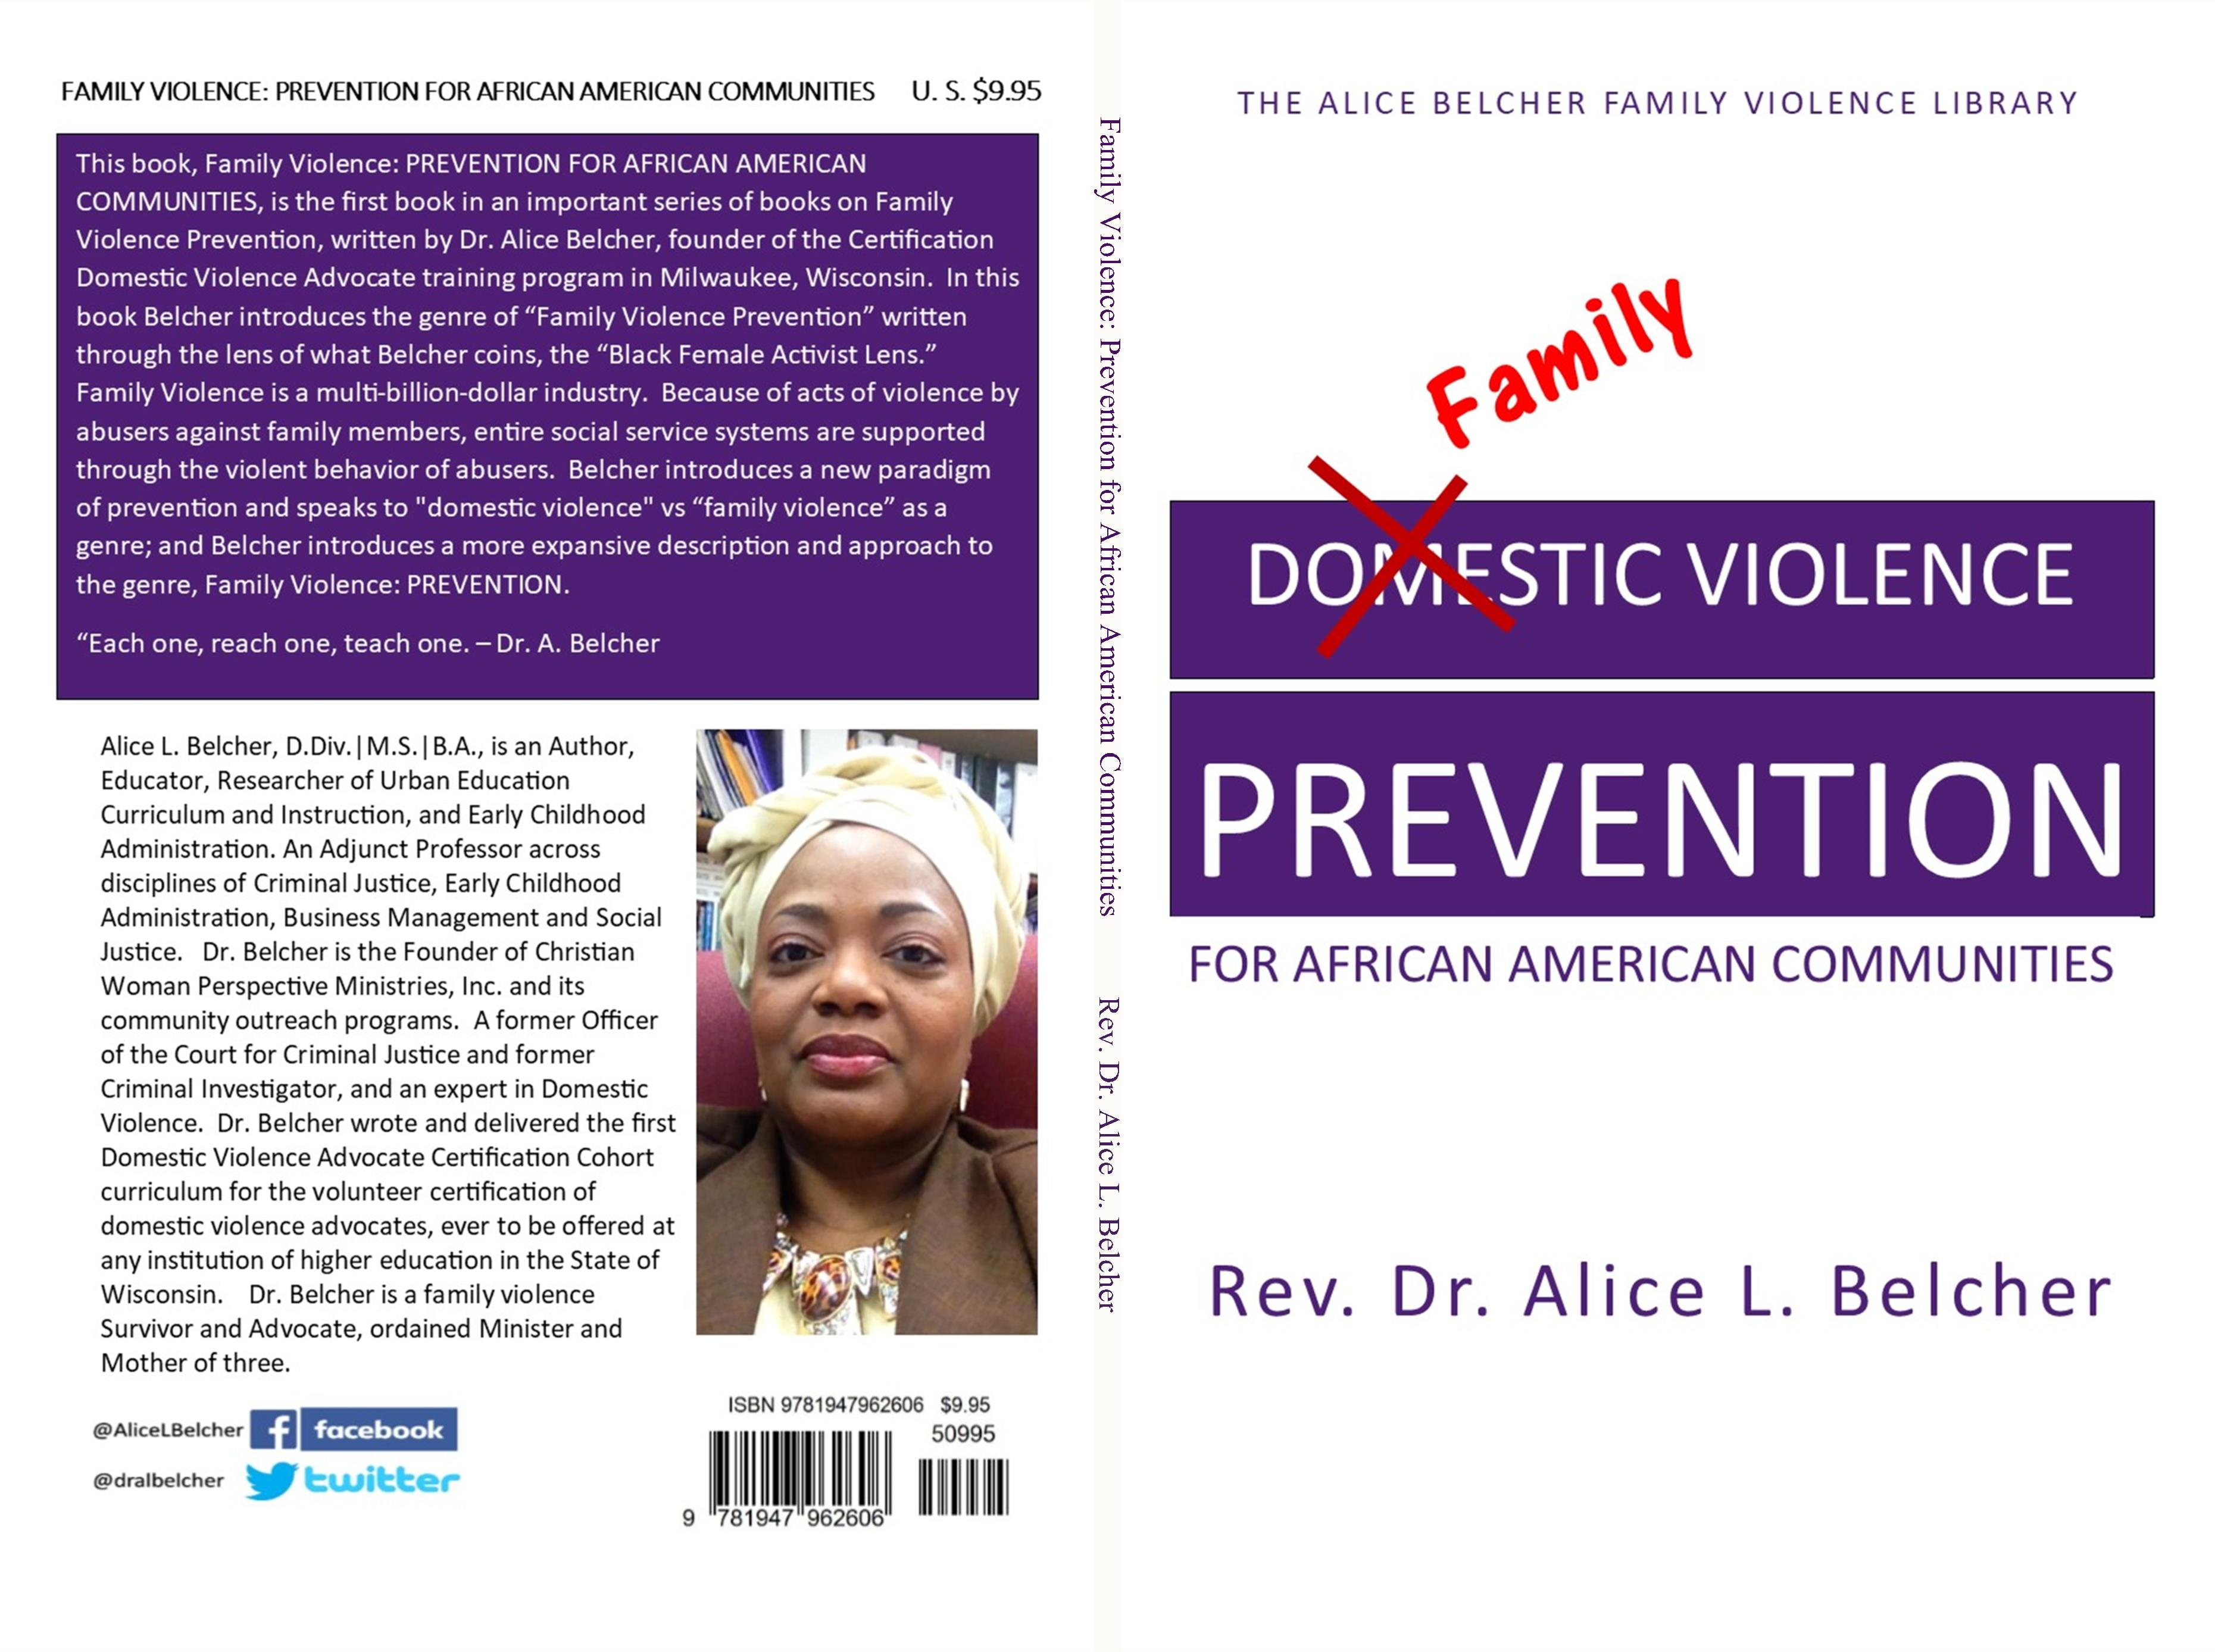 Family Violence: Prevention for African American Communities cover image